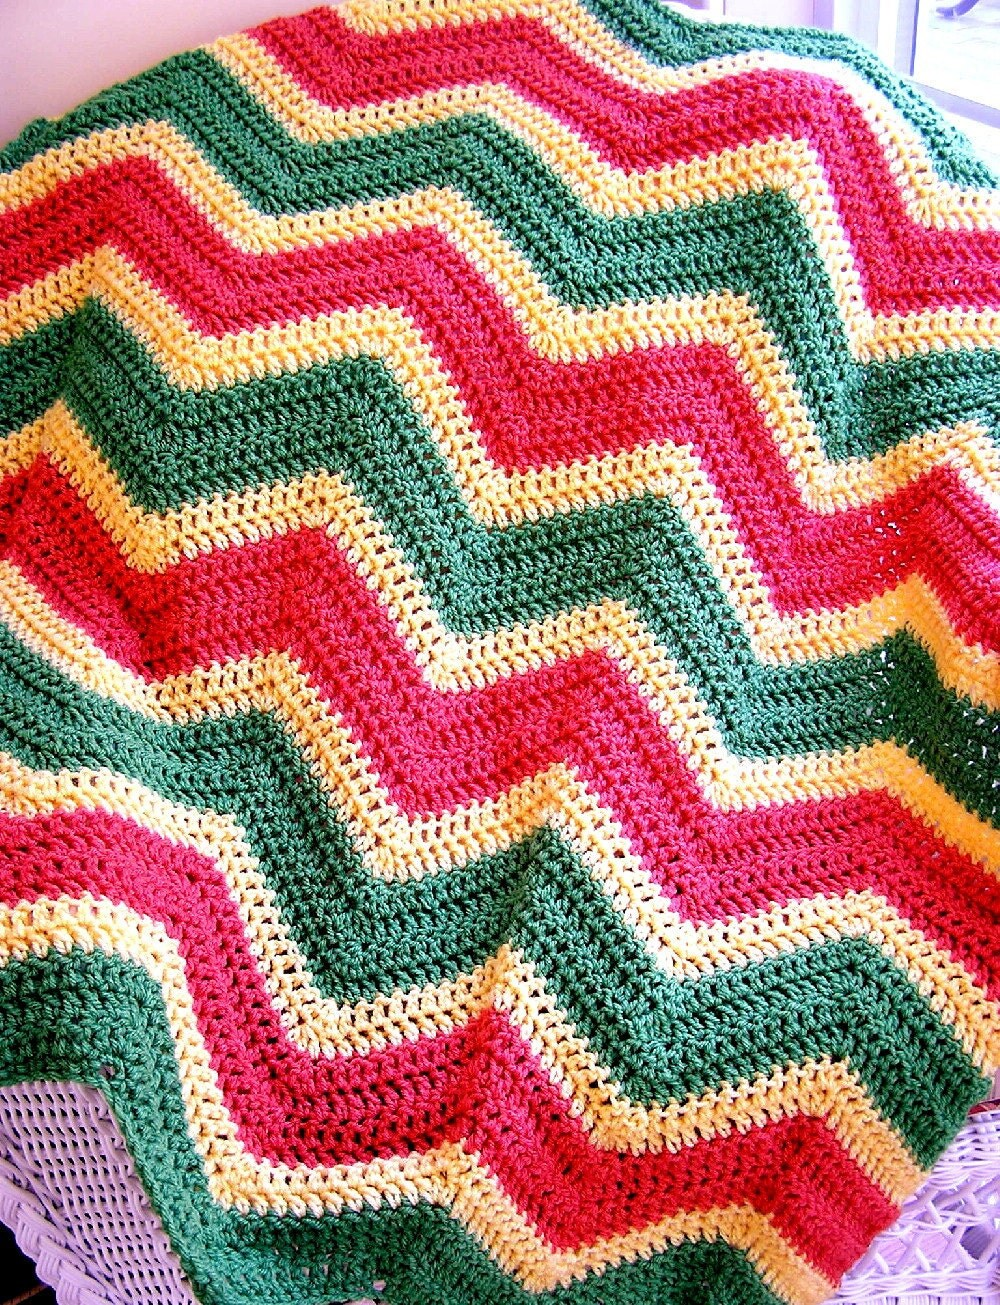 chevron zig zag baby blanket crochet afghan by JDCrochetCreations